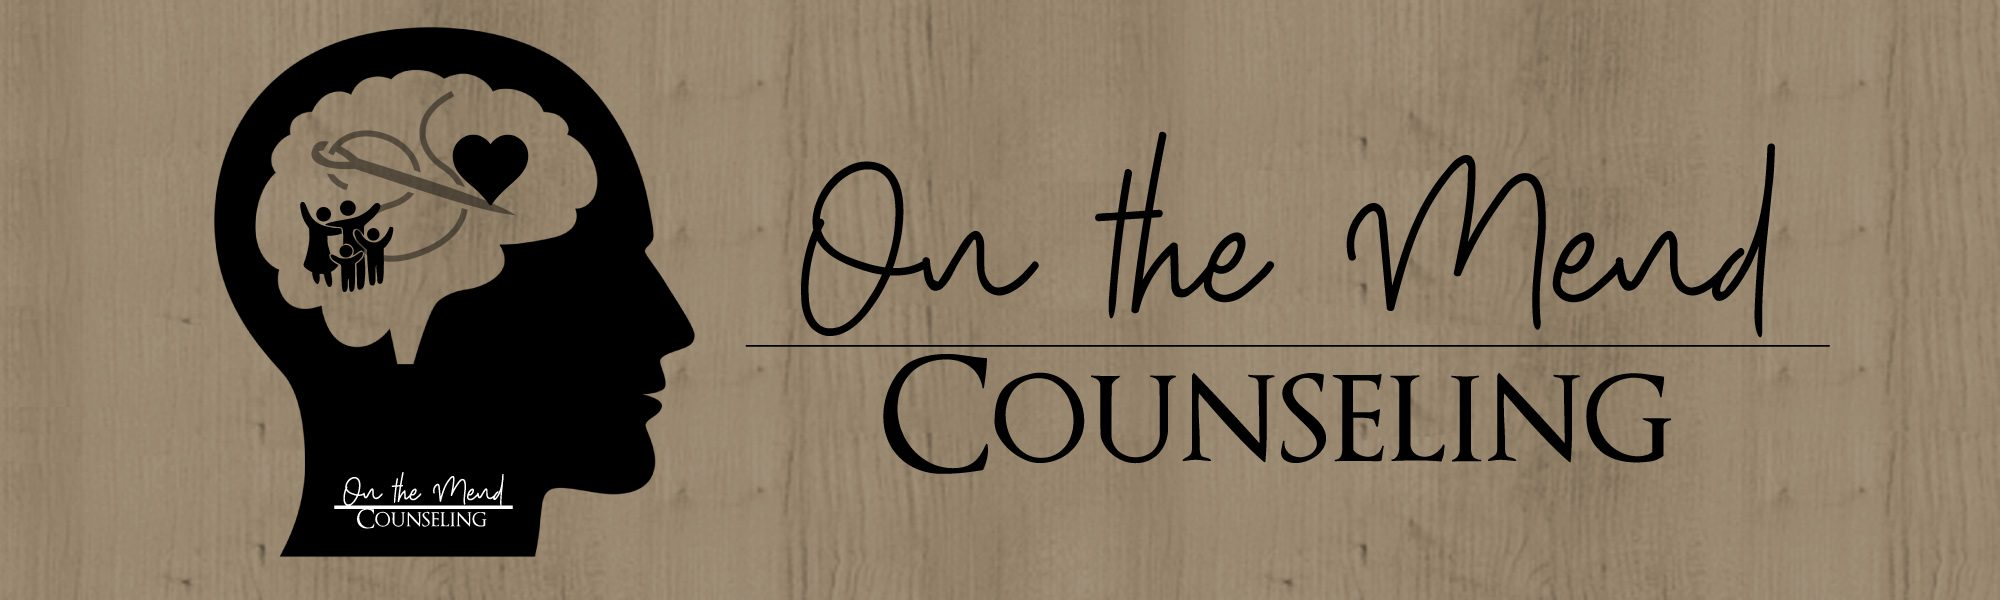 On The Mend Counseling